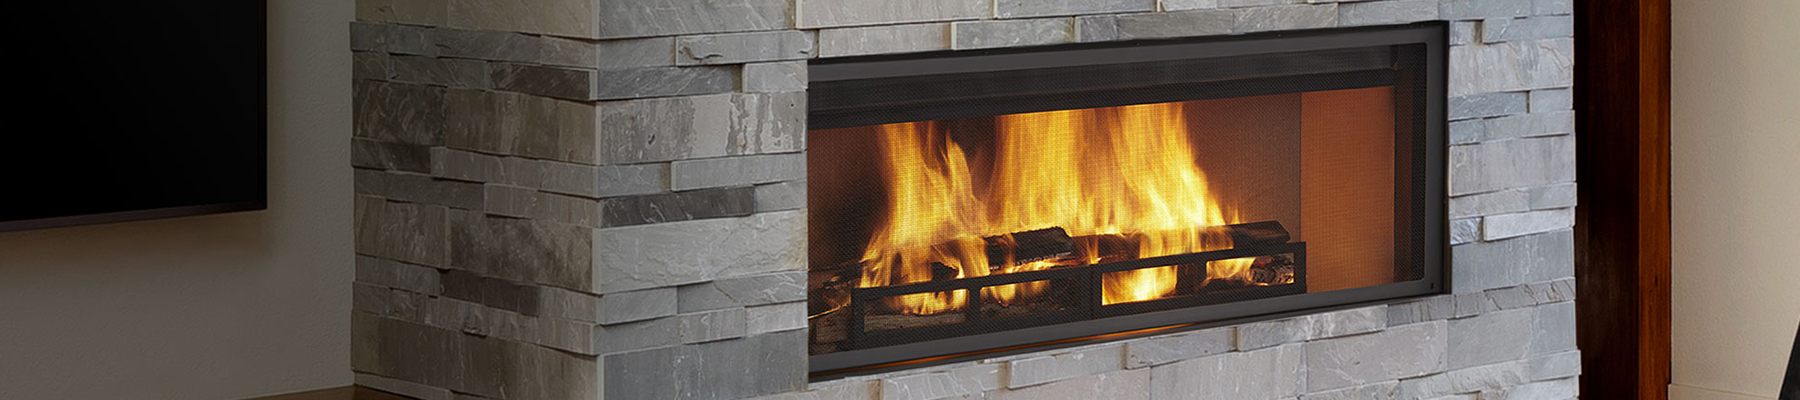 wood linear fireplace